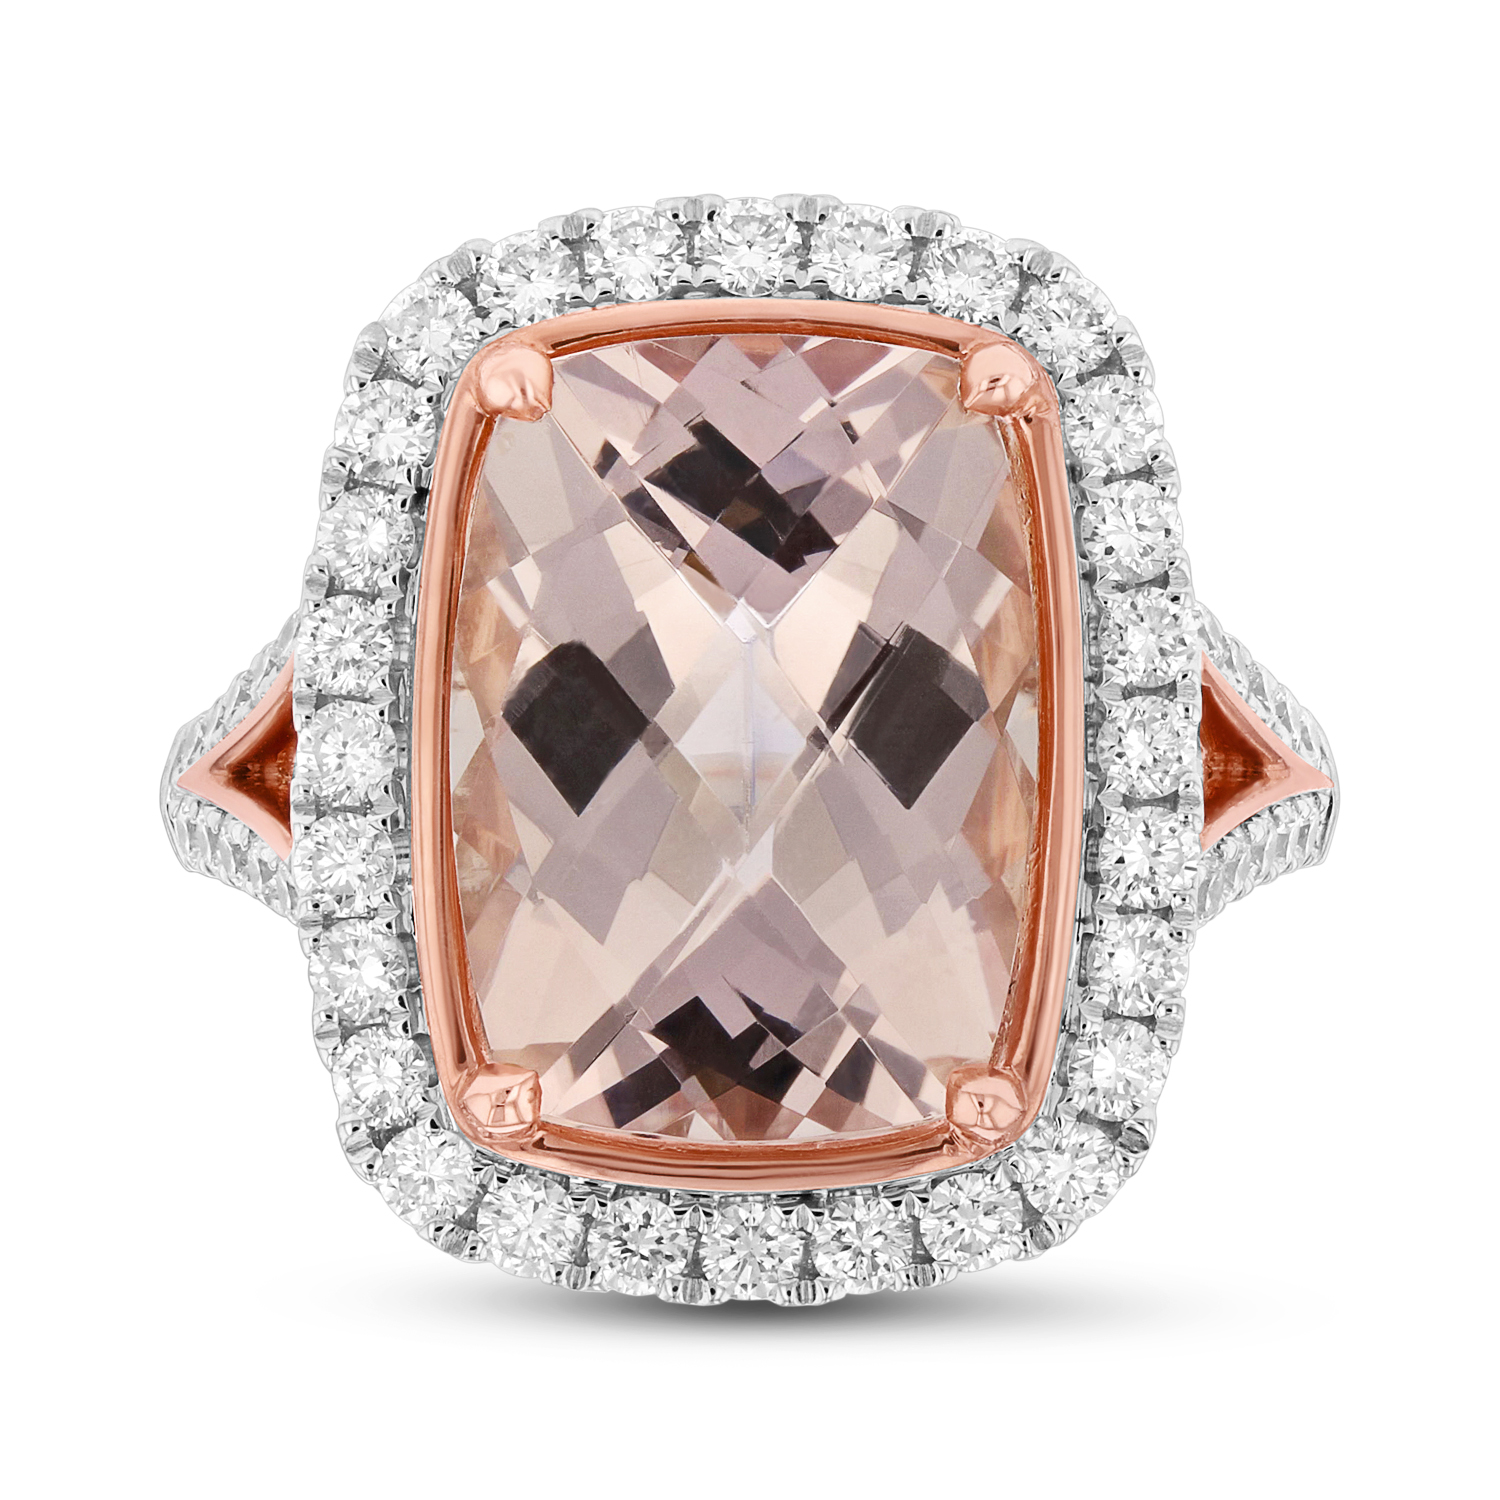 View Diamond and 14X10mm Cushion Cut Morganite Ring in 14k Two Tone Gold